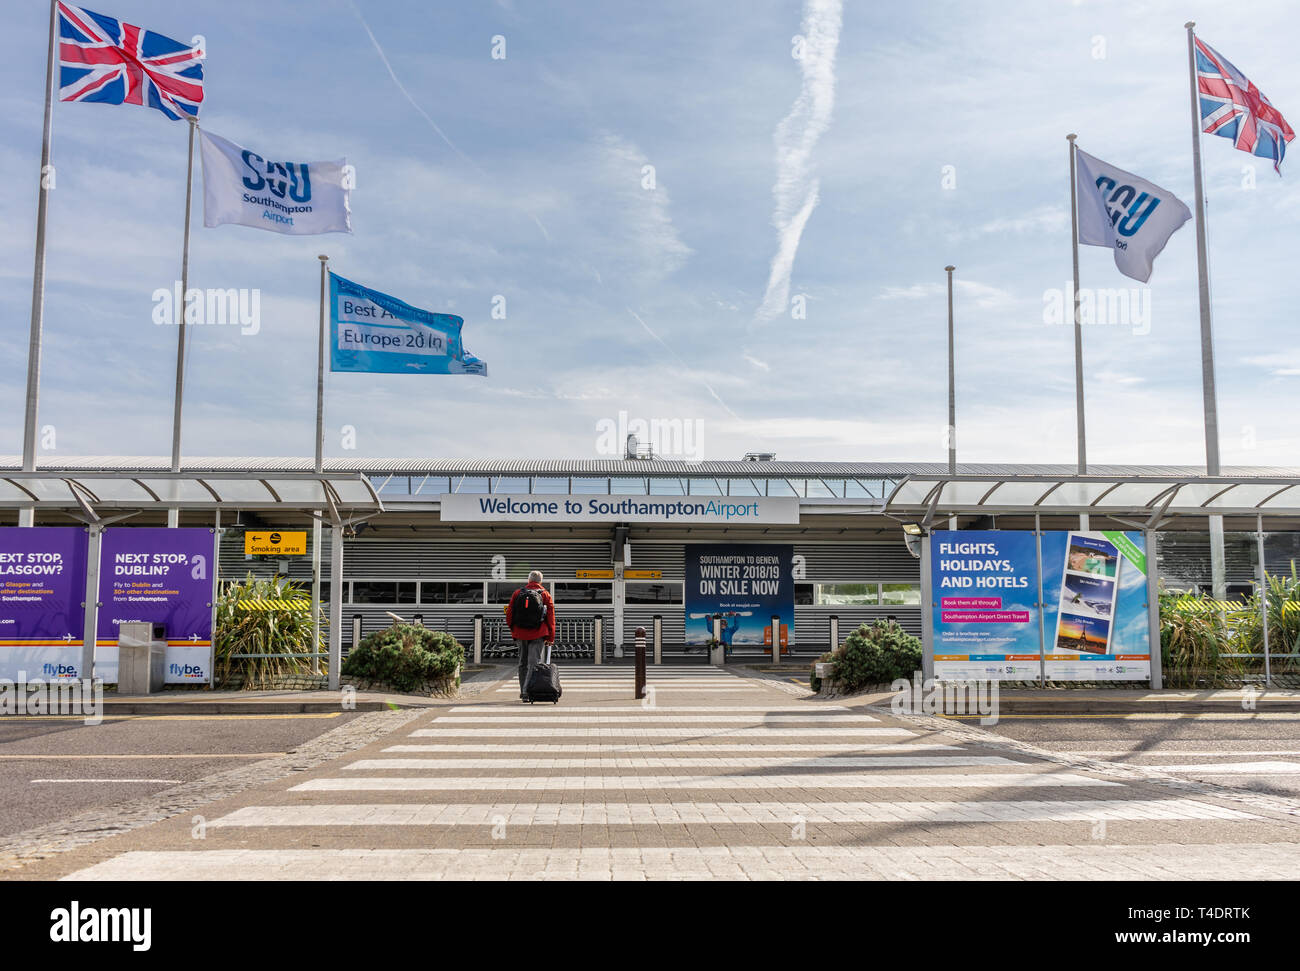 Entrance to Southampton Airport, a small International airport in Southampton, Hampshire, England, UK - Stock Image